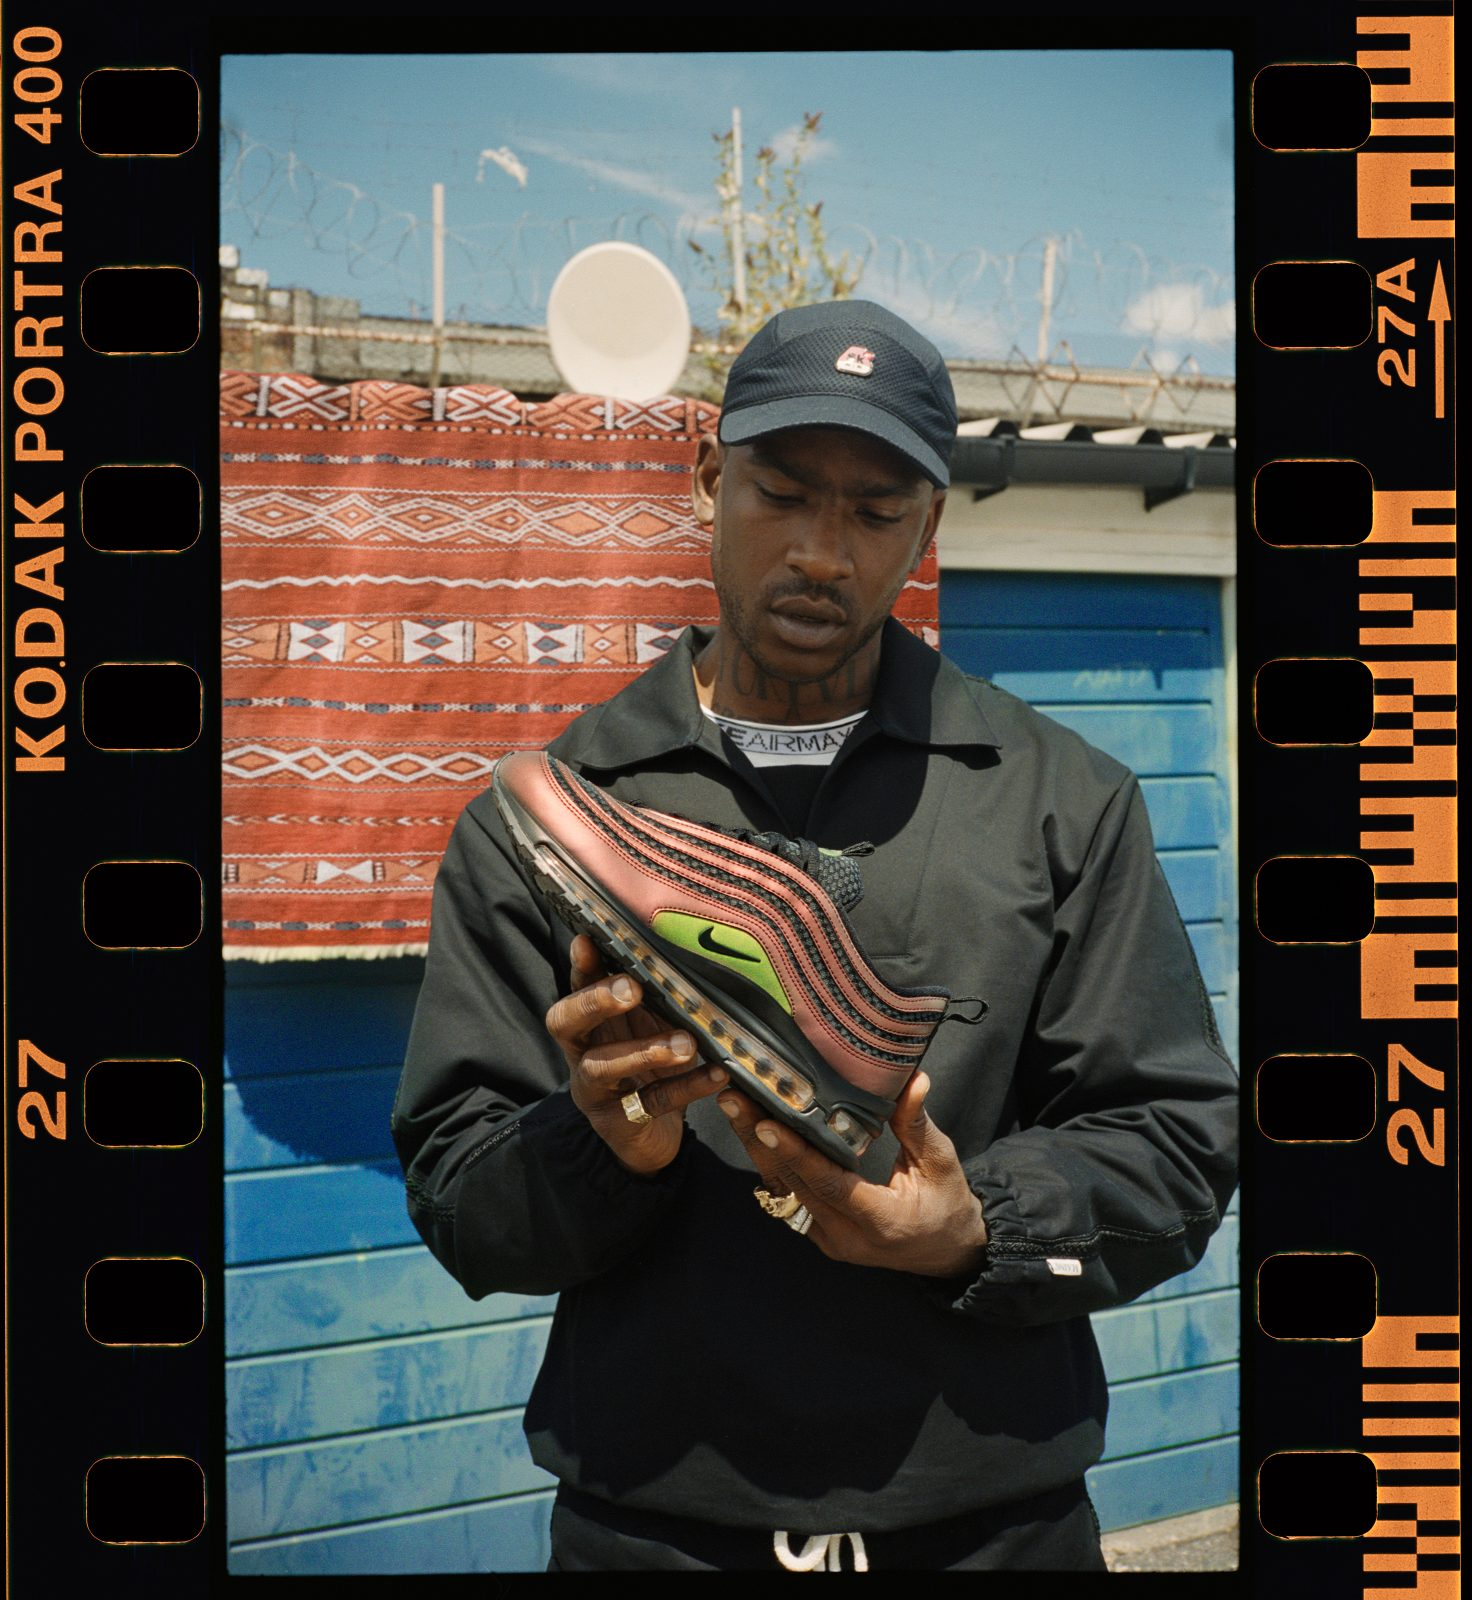 Skepta collaborates with Nike for limited edition Air Max 97